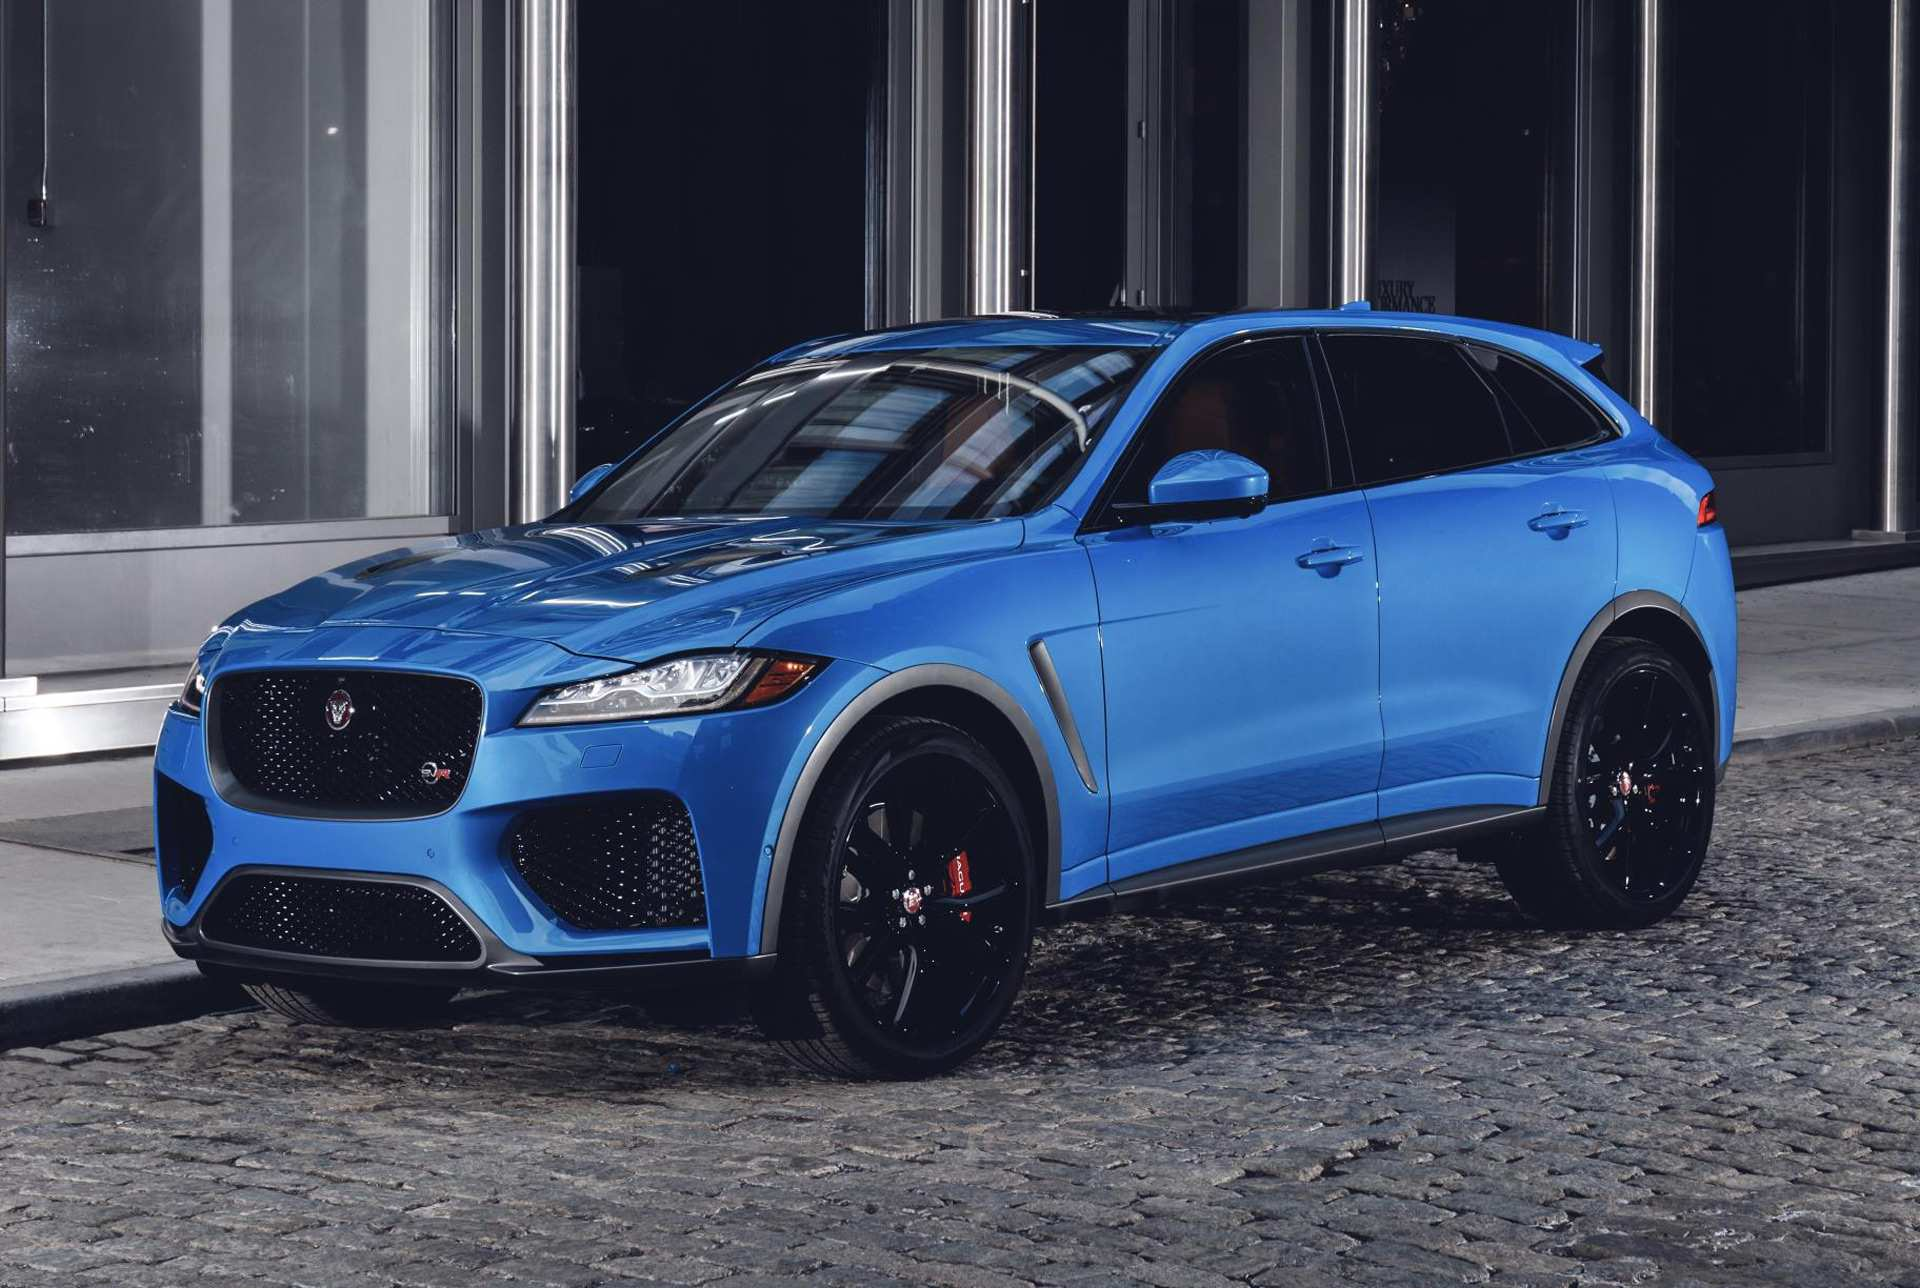 97 All New Jaguar F Pace 2020 Spy Shoot for Jaguar F Pace 2020